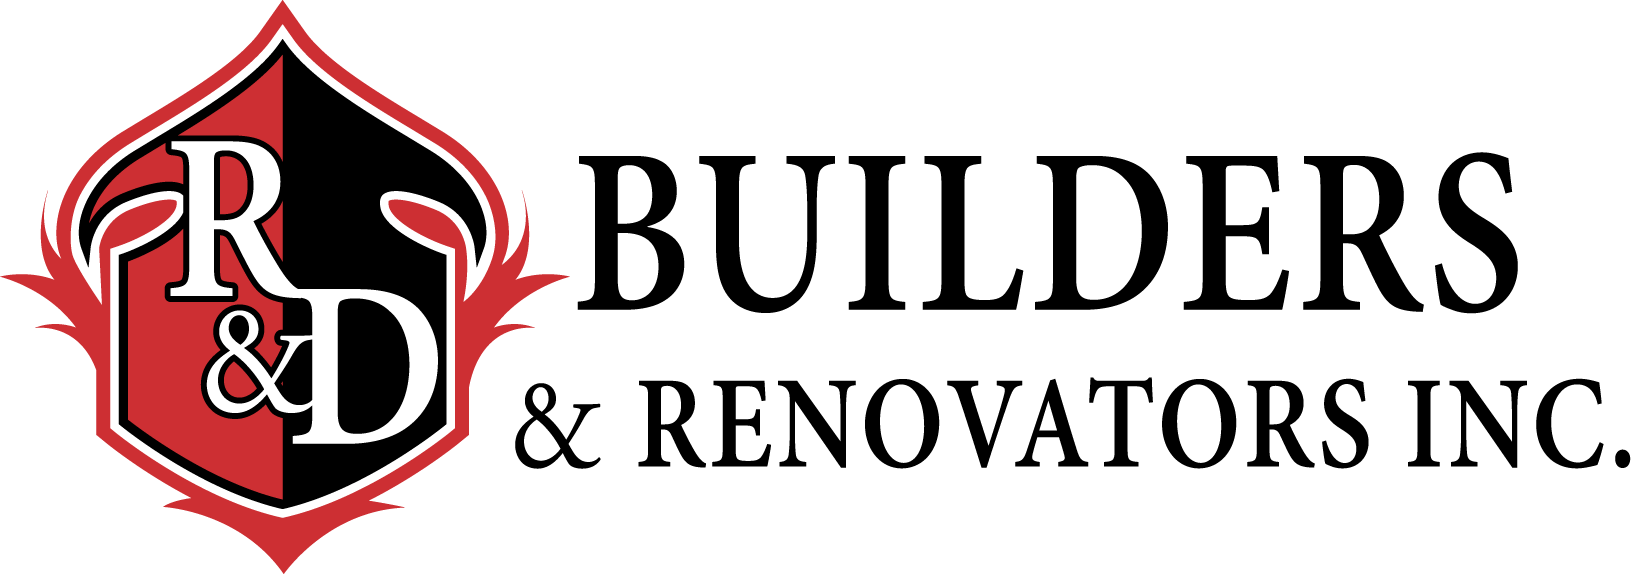 R&D Builders & Renovators Inc - classified ad